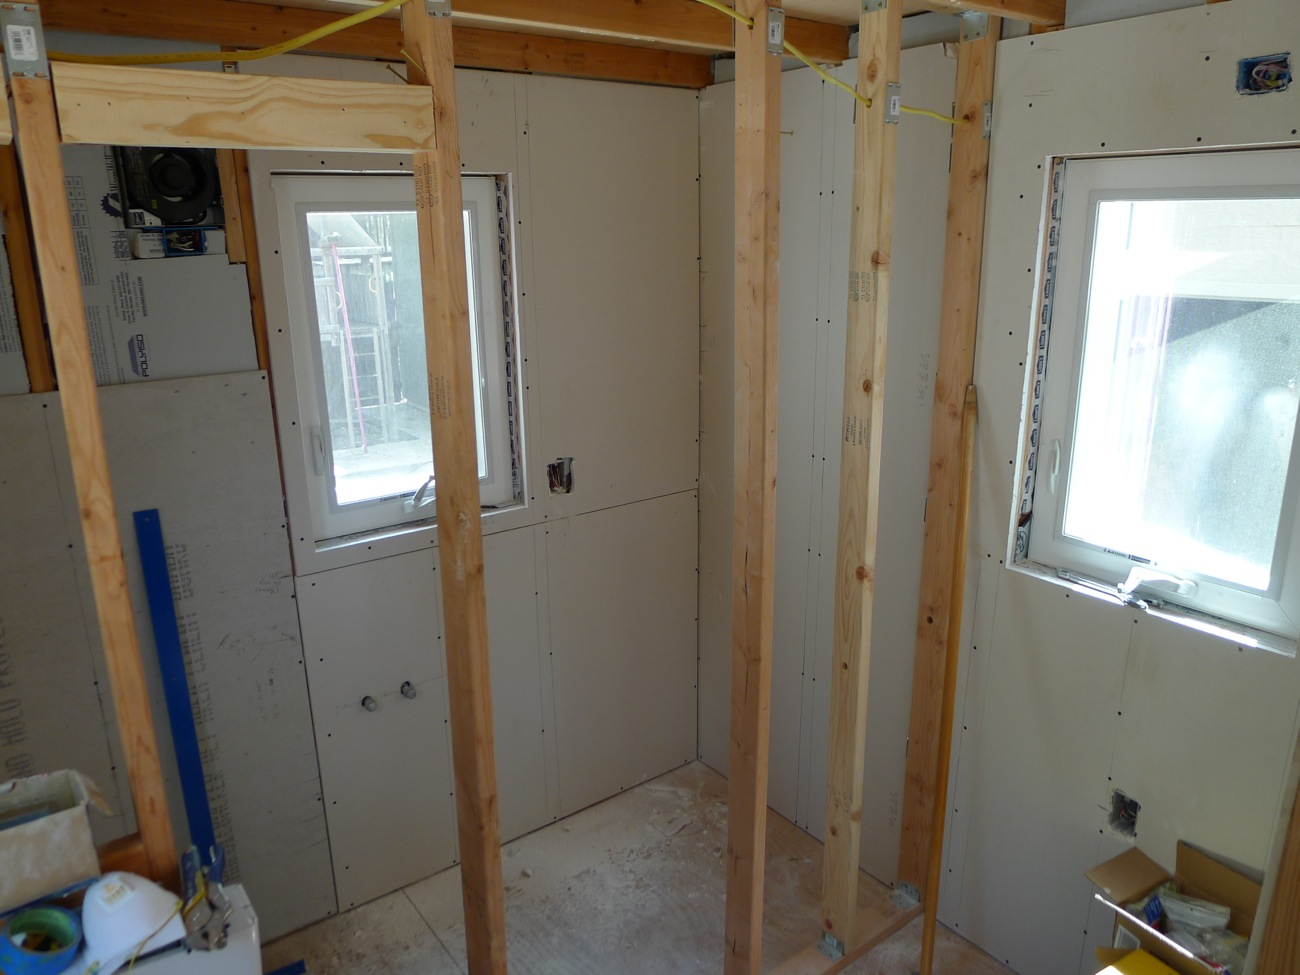 Tiny house finish drywall photos bathroom and shower 01 What sheetrock to use in bathroom